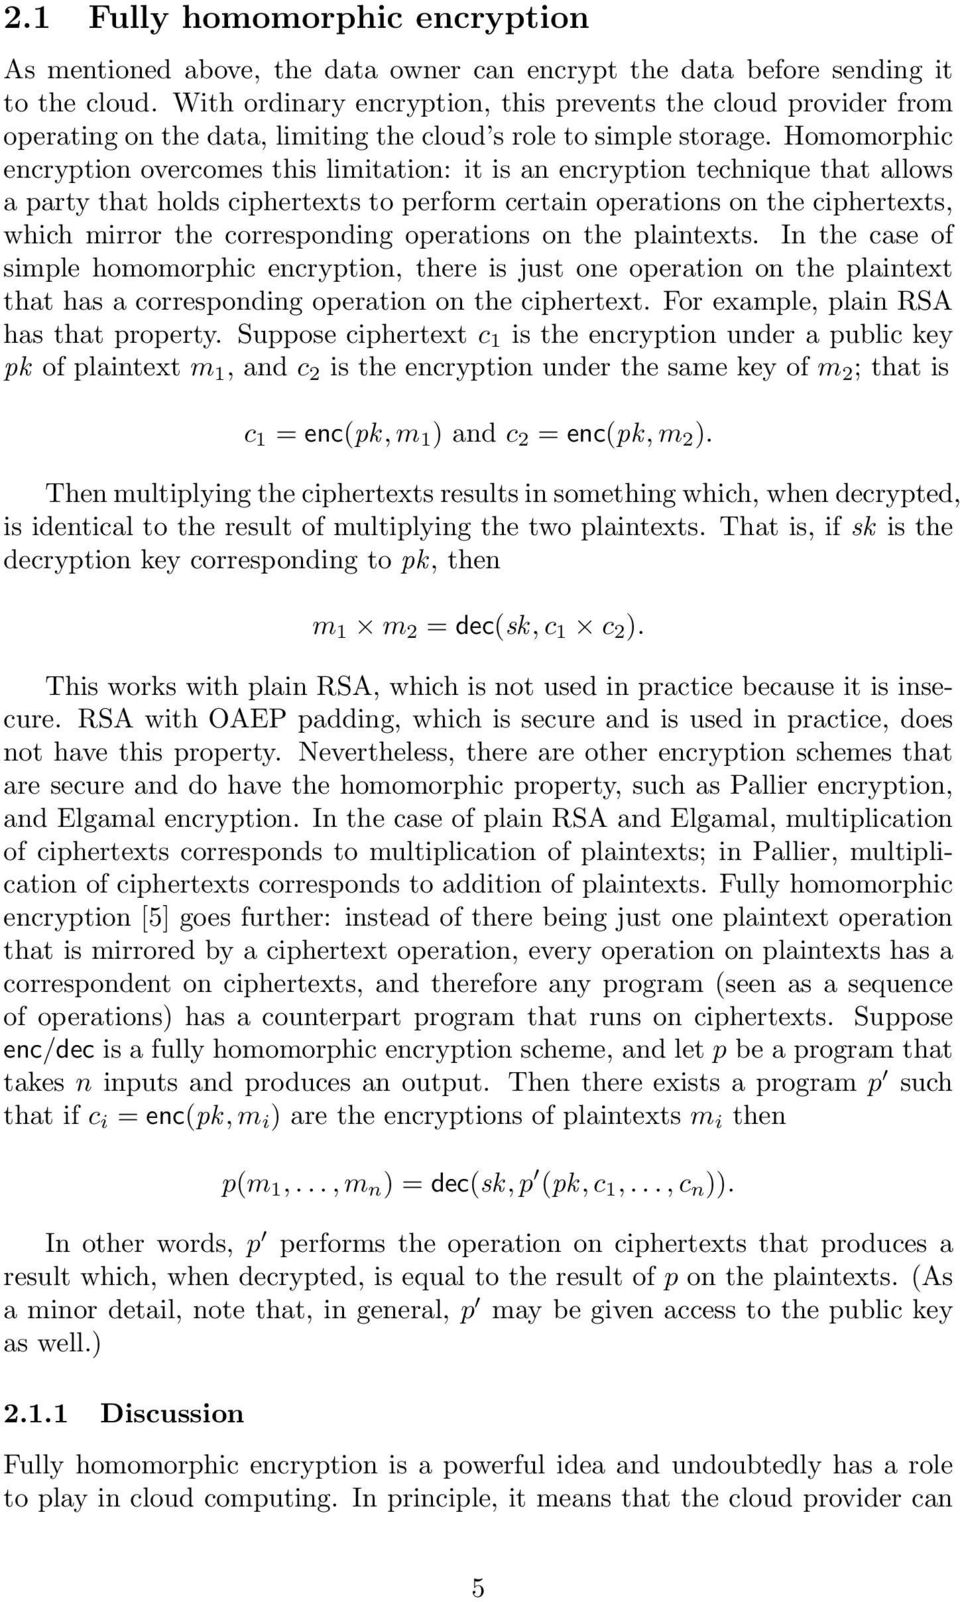 Homomorphic encryption overcomes this limitation: it is an encryption technique that allows a party that holds ciphertexts to perform certain operations on the ciphertexts, which mirror the